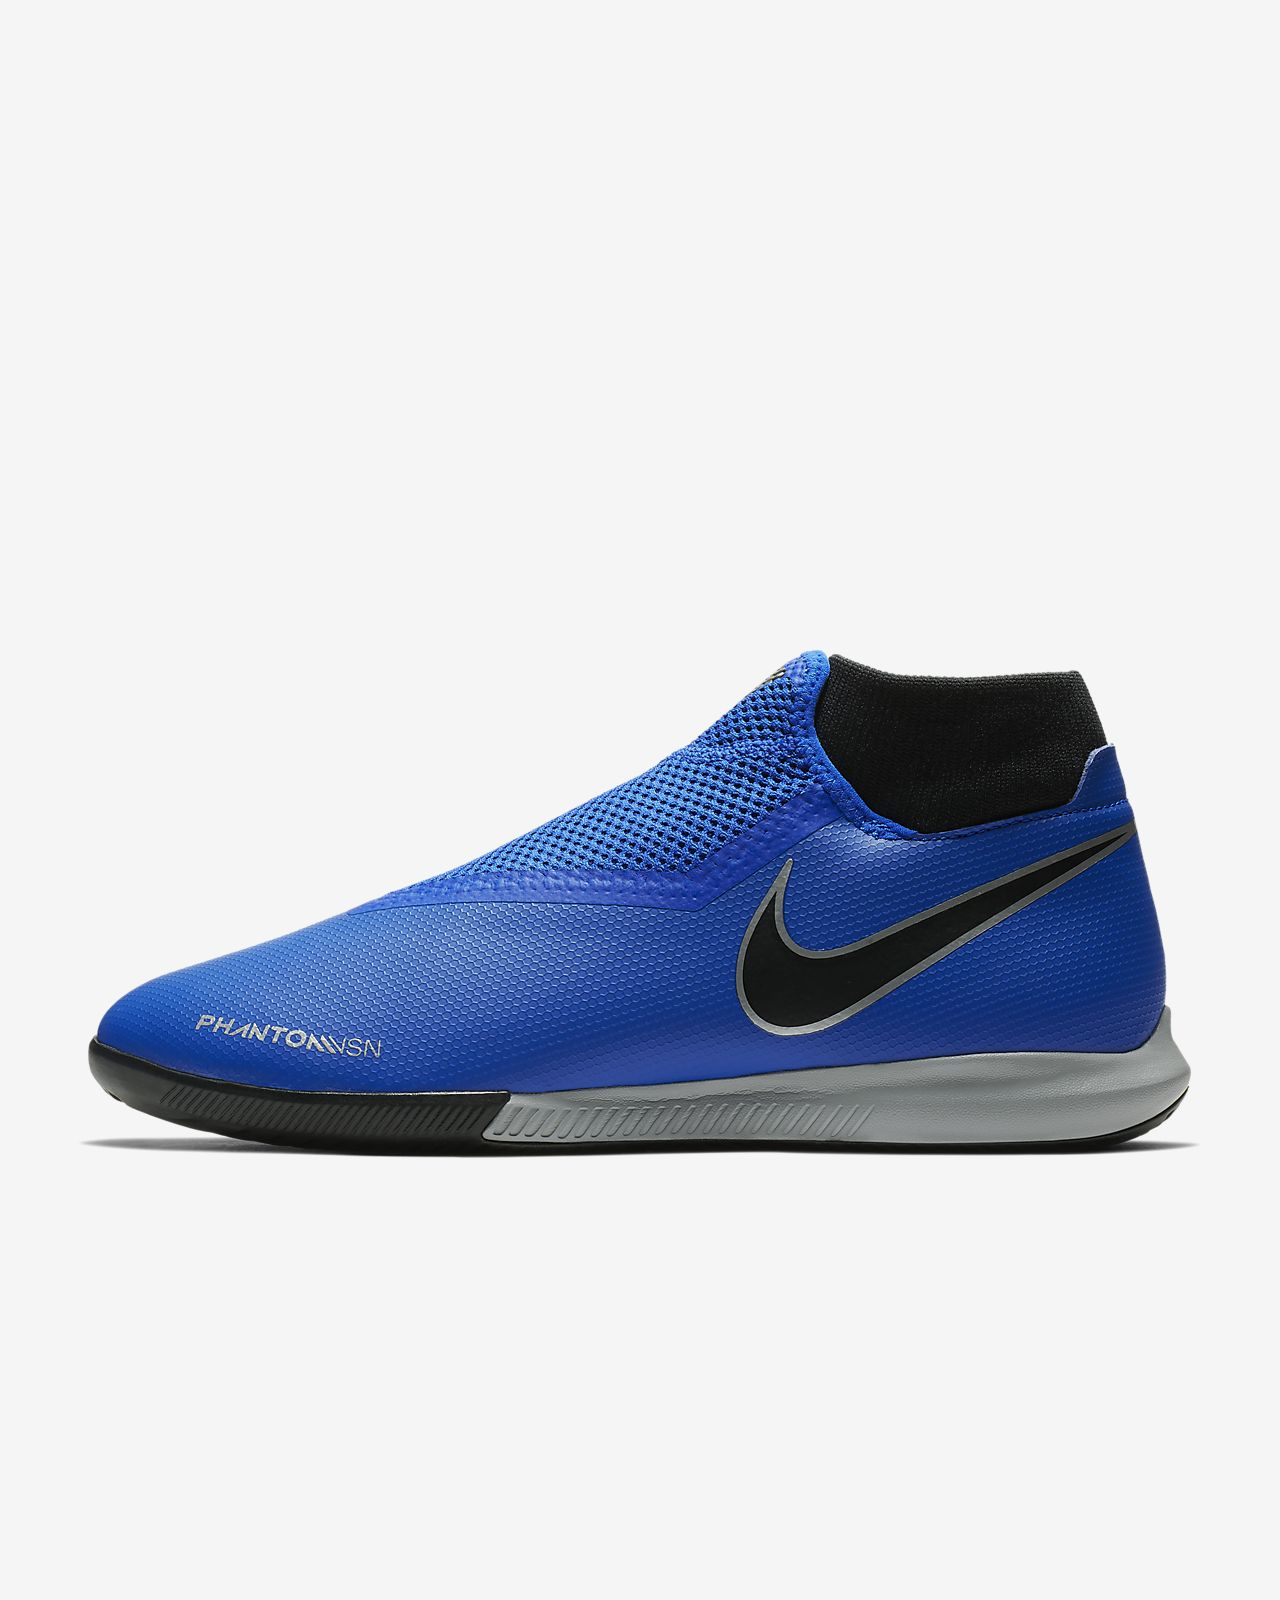 Football Academy Salle Vision De Chaussure Nike Phantom Dynamic Fit En yvN0w8Omn